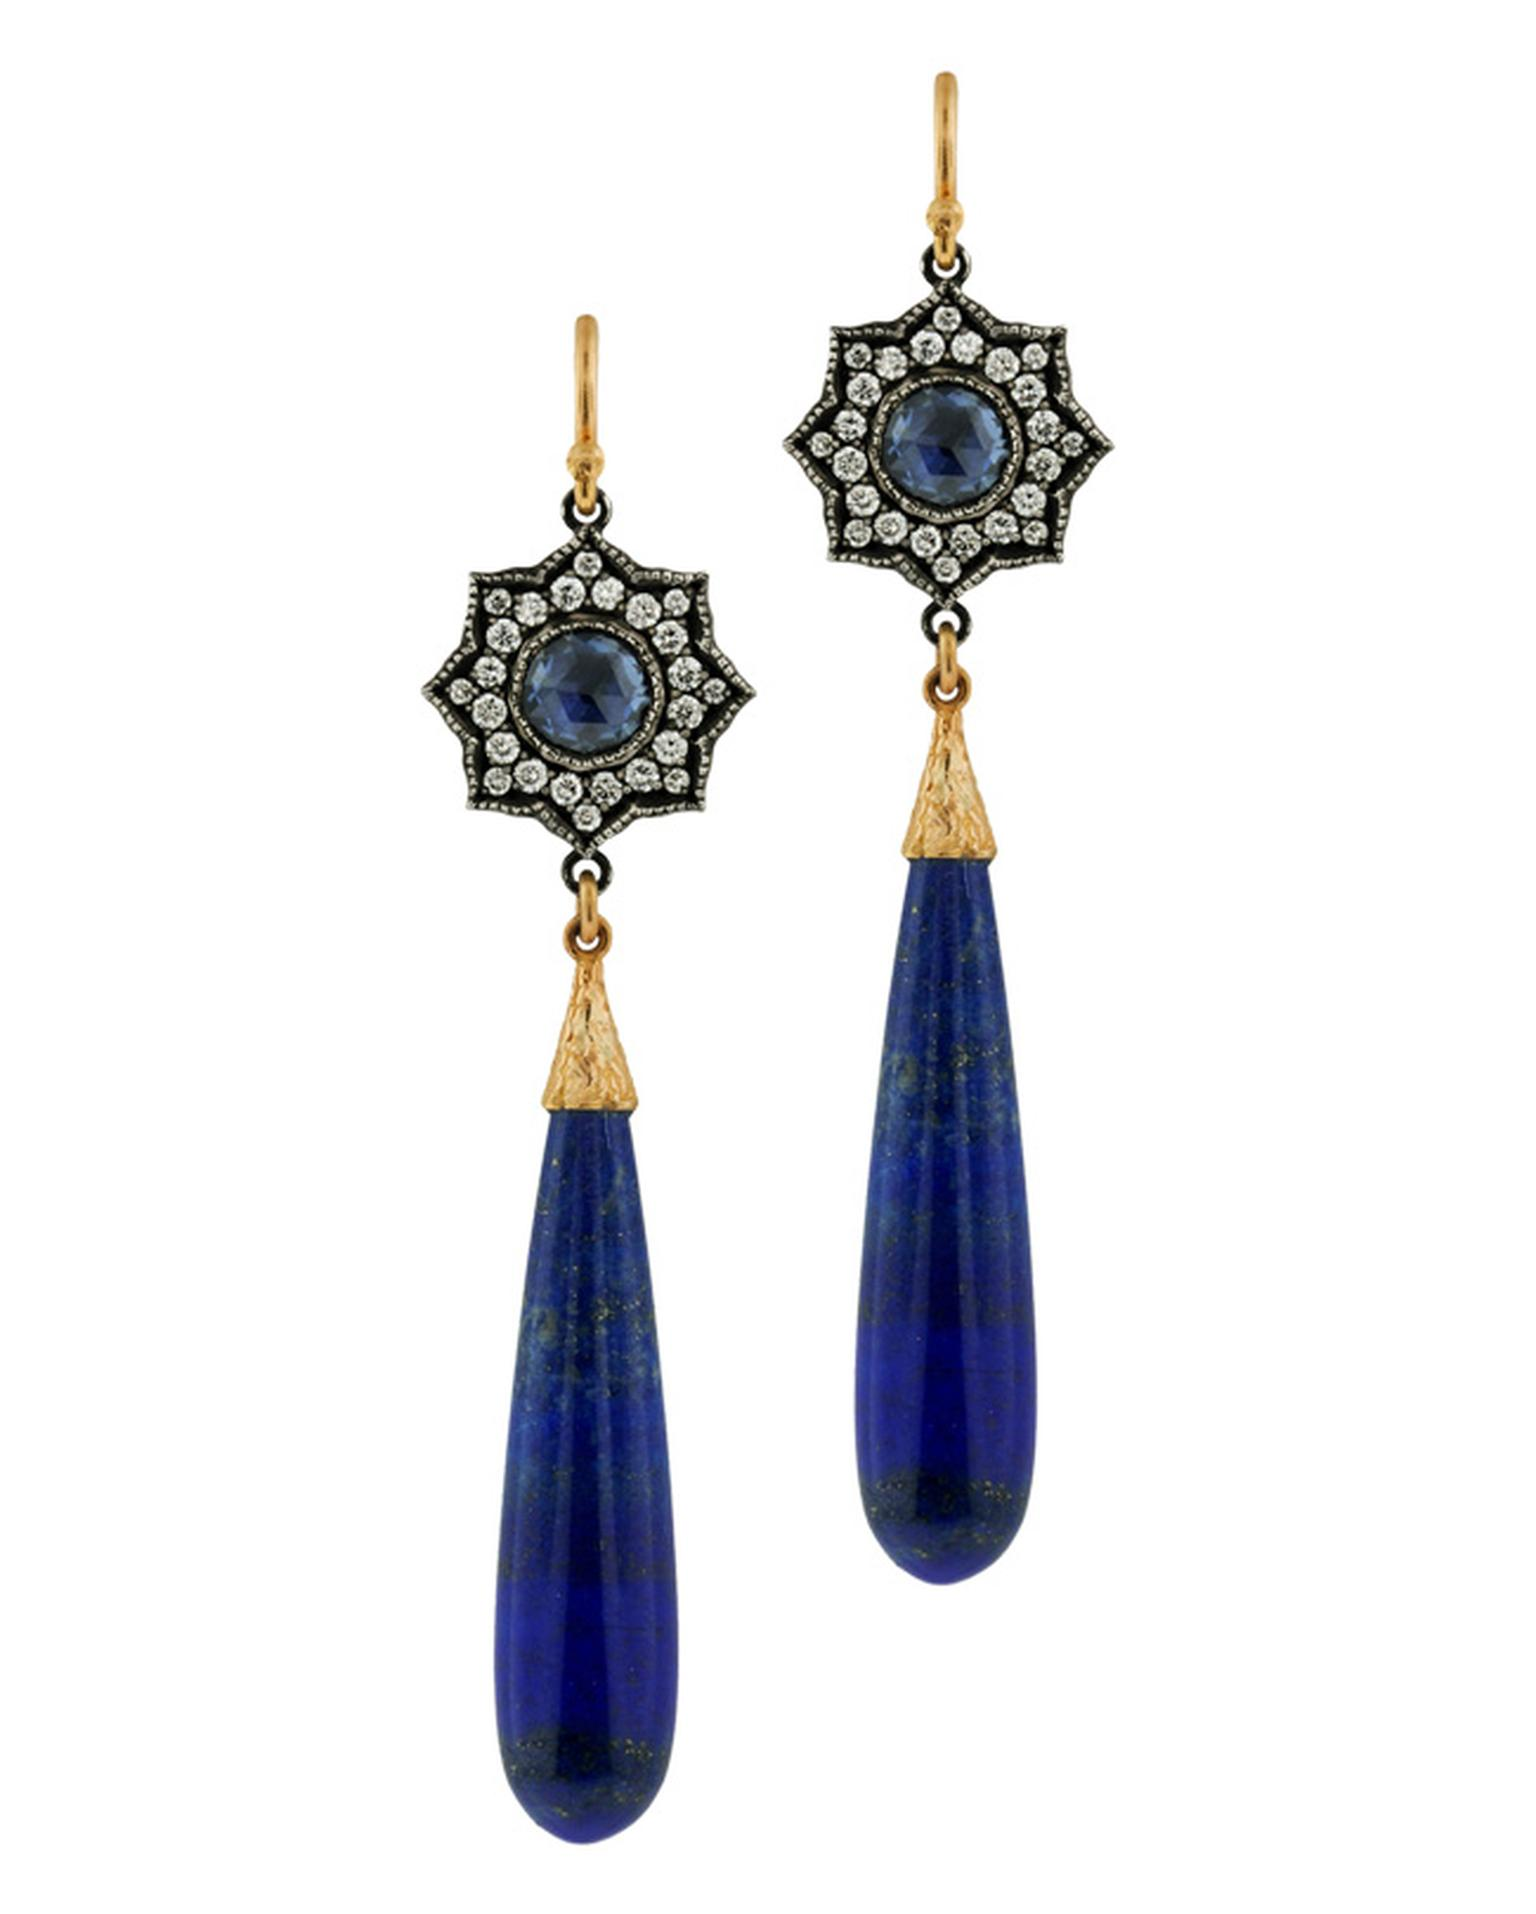 Arman Sarkisyan lapis lazuli drop earrings_20130822_Main